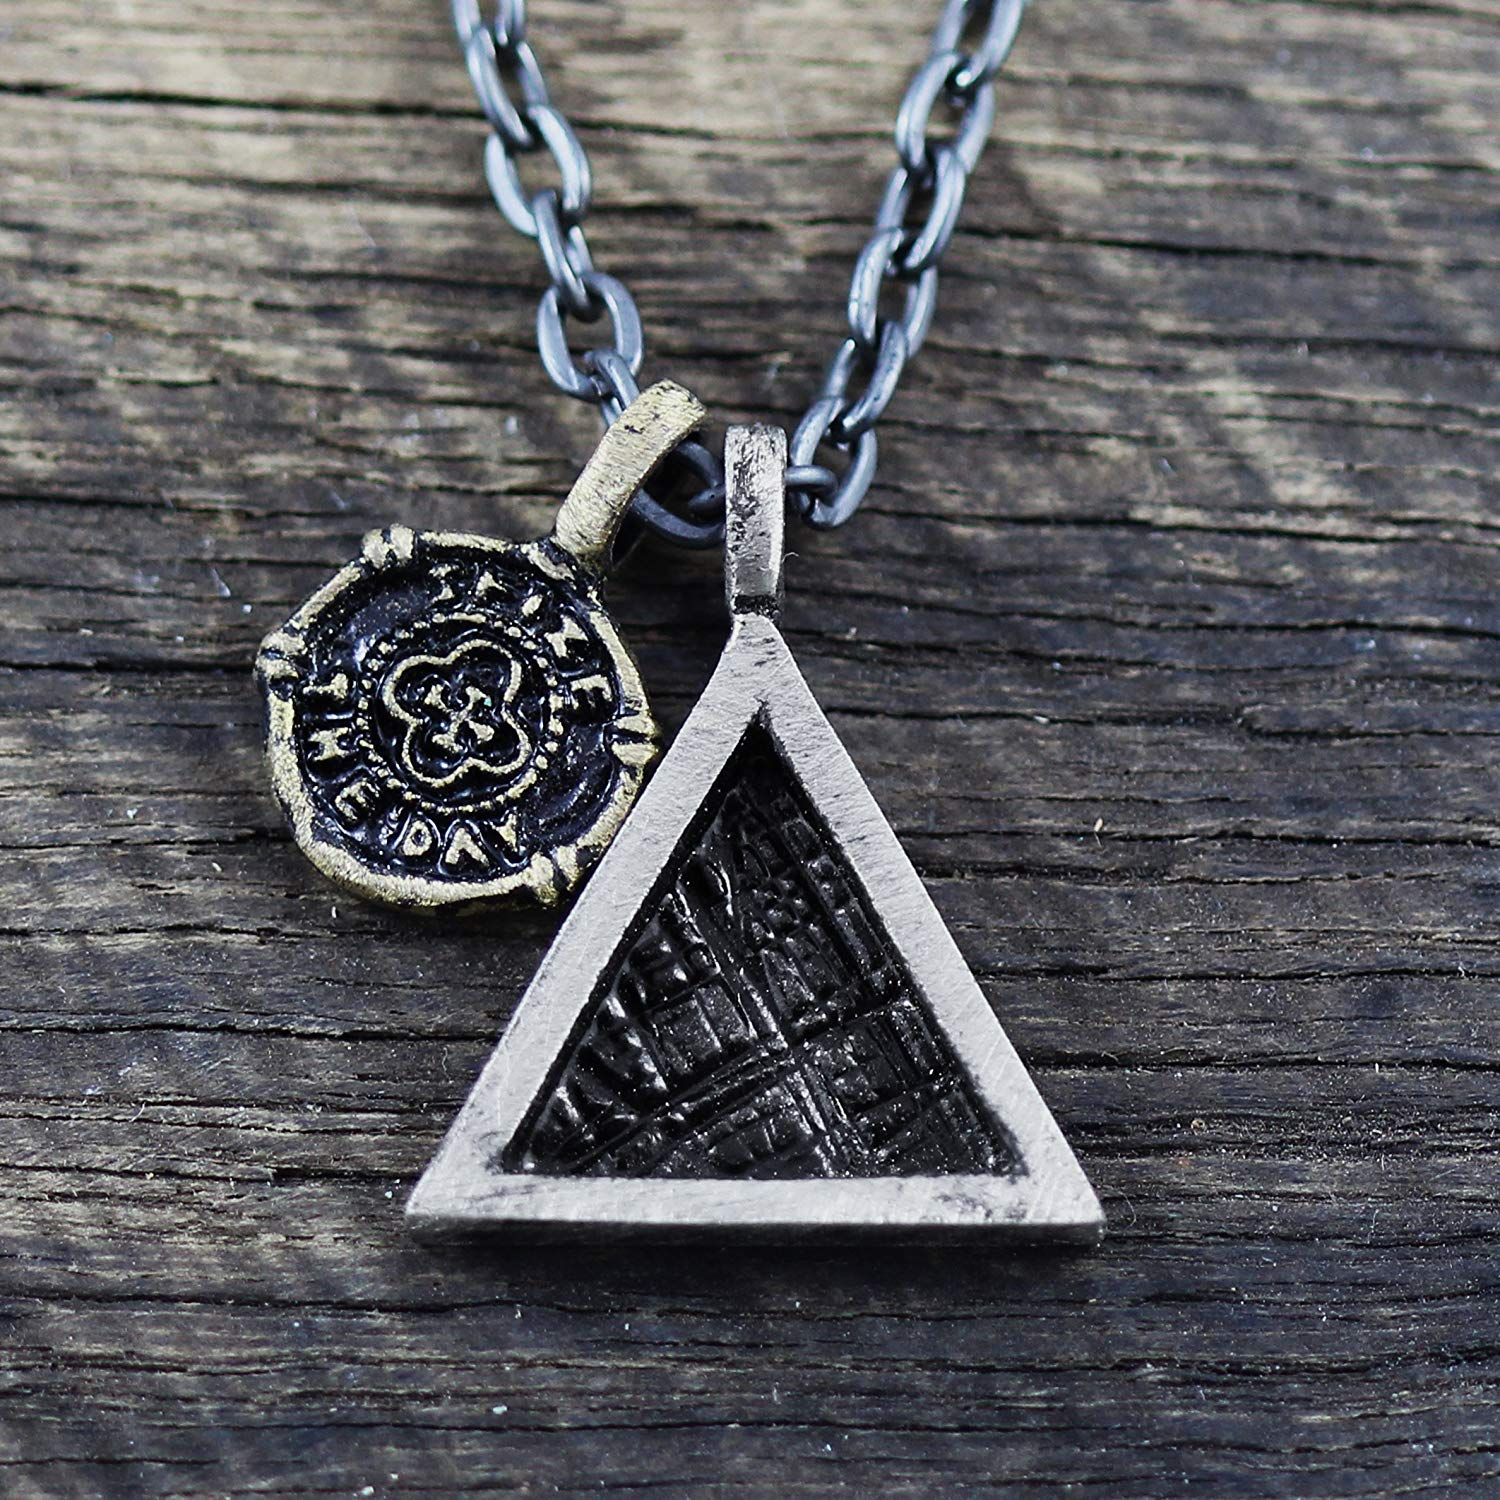 505063f9f8bdf Get Quotations · Triangle Necklace Mens Necklace Geometric Jewelry Mens  Chain Necklace Minimalist Necklace Mens Jewelry Silver Triangle Men s